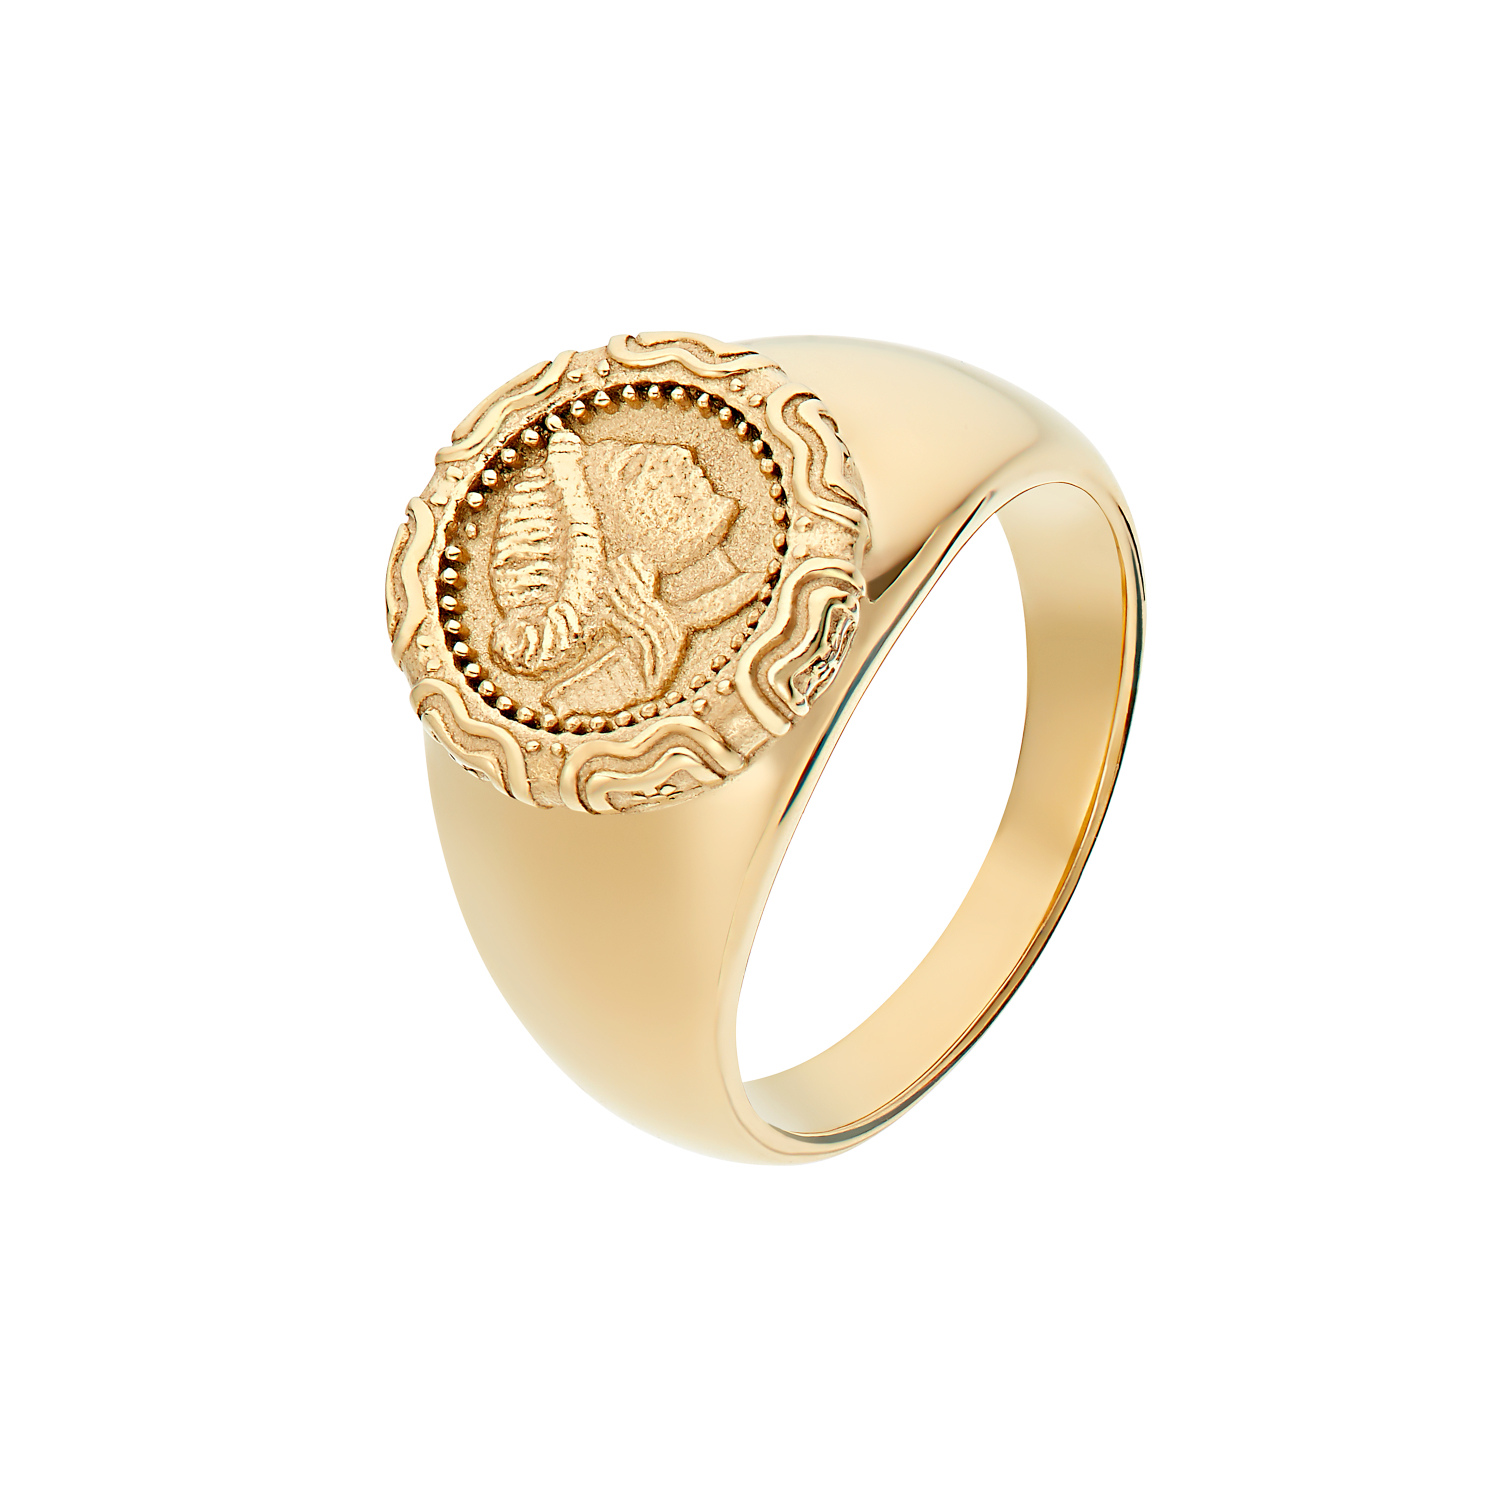 ANTIQUE RING GOLD